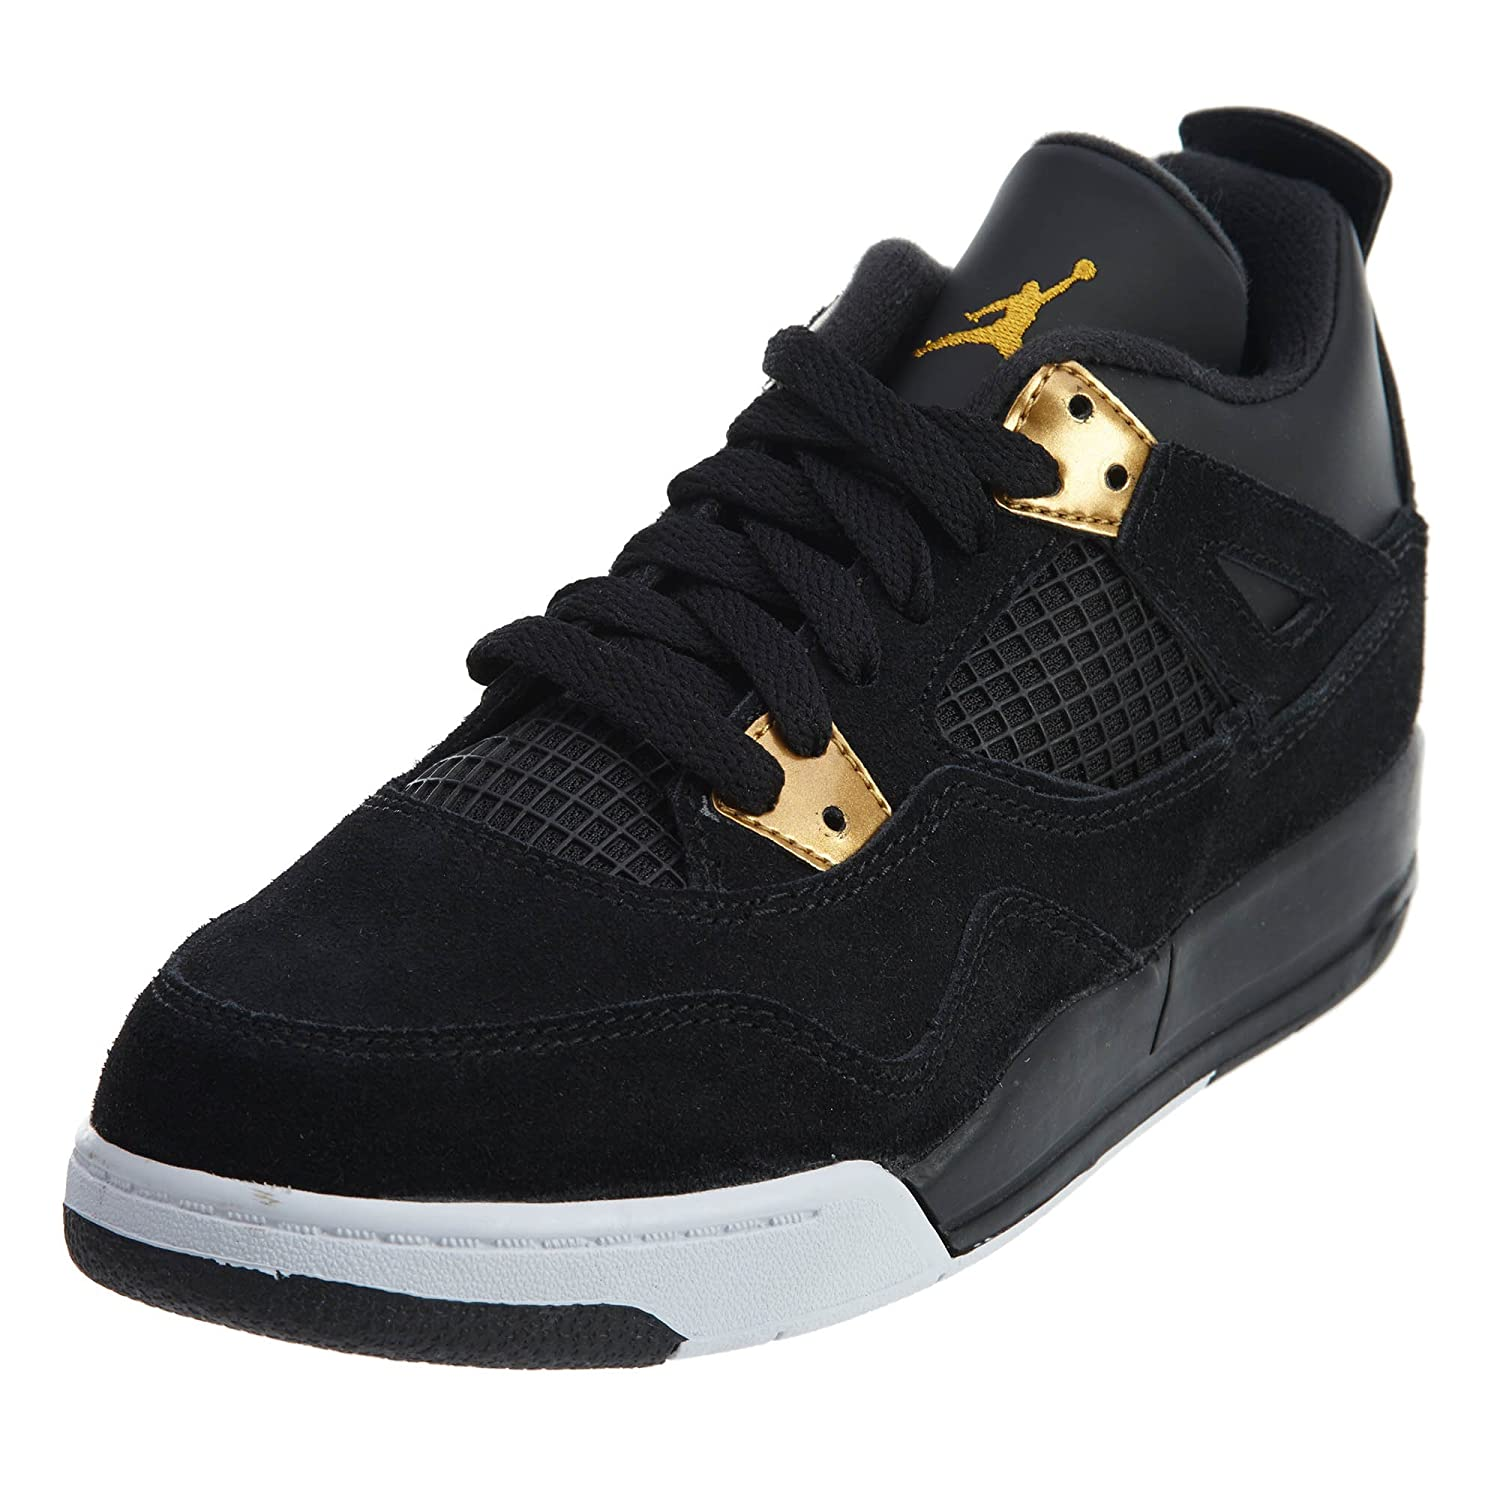 Jordan Nike 4 Retro BP Black/Metallic Gold/White 308499-032